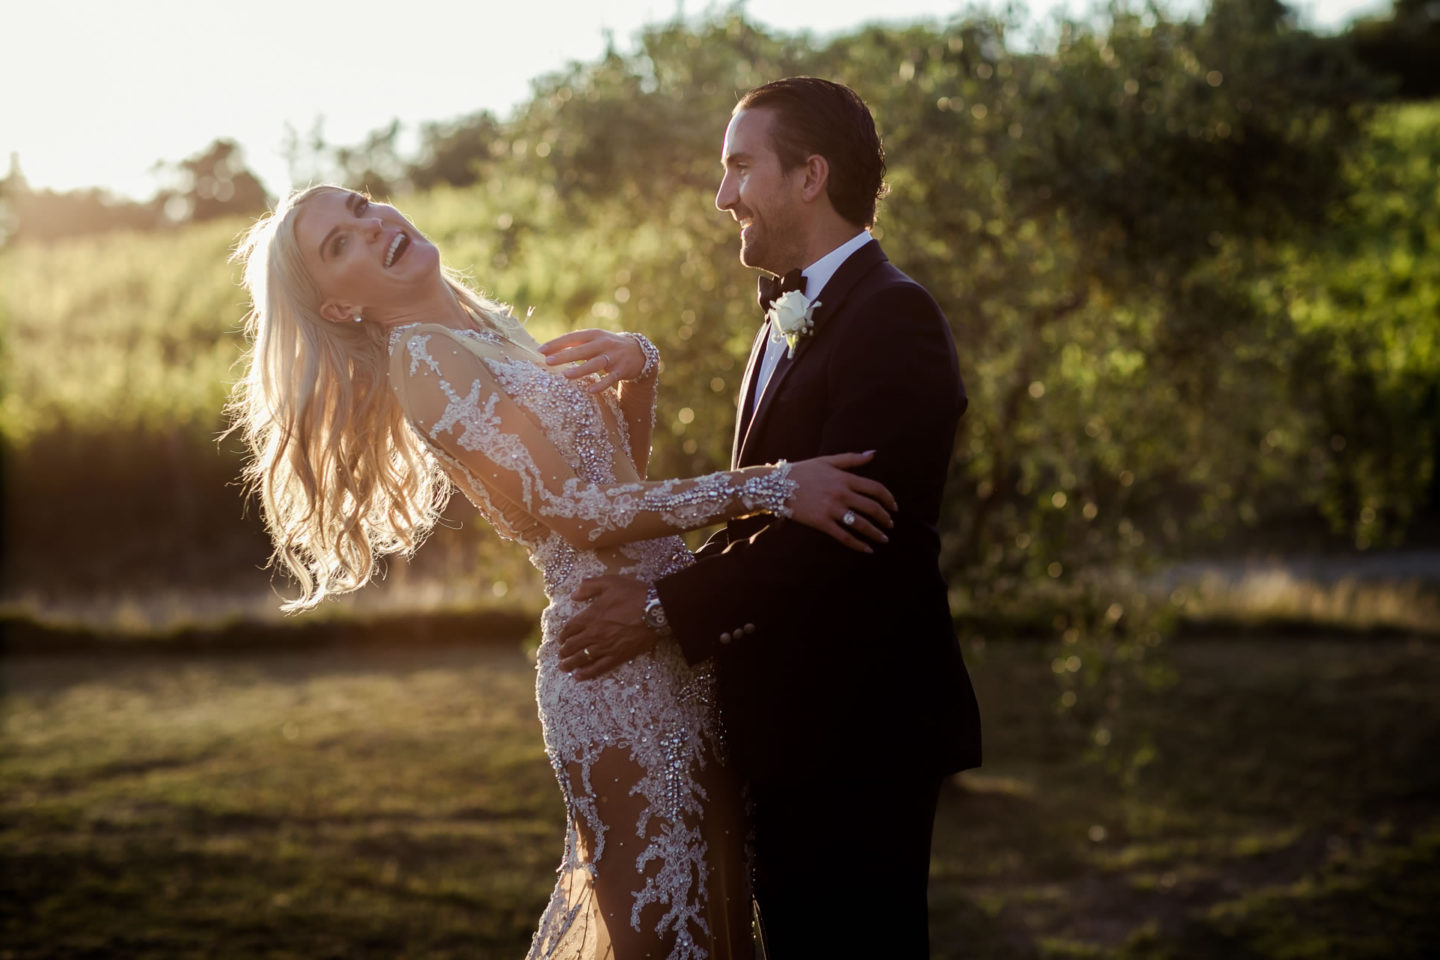 Happyness :: Exciting wedding in the countryside of Siena :: Luxury wedding photography - 46 :: Happyness